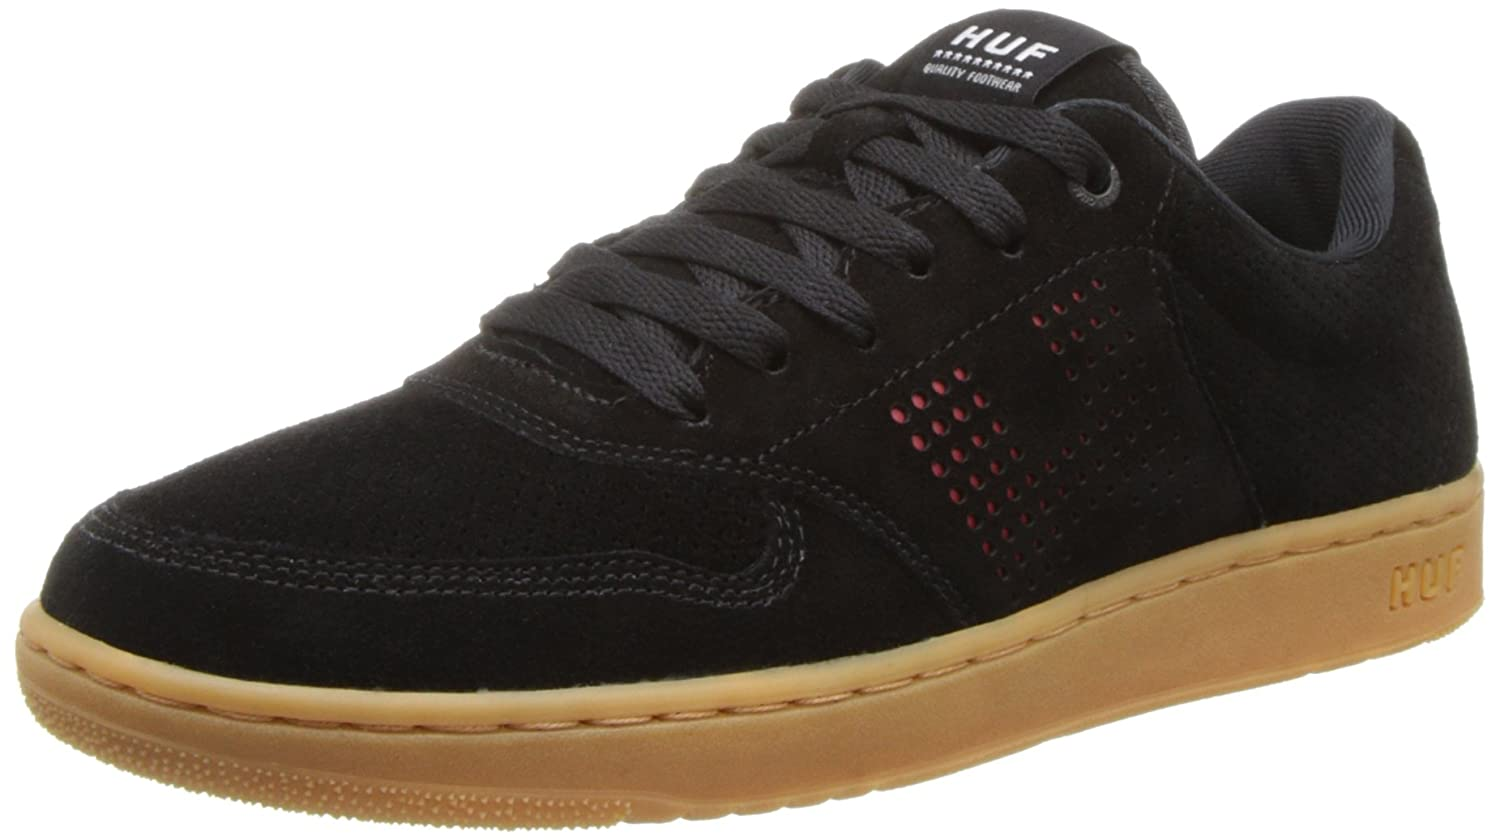 HUF Men's Noble Skateboard Shoe 7.5 D(M) US|Black/Gum